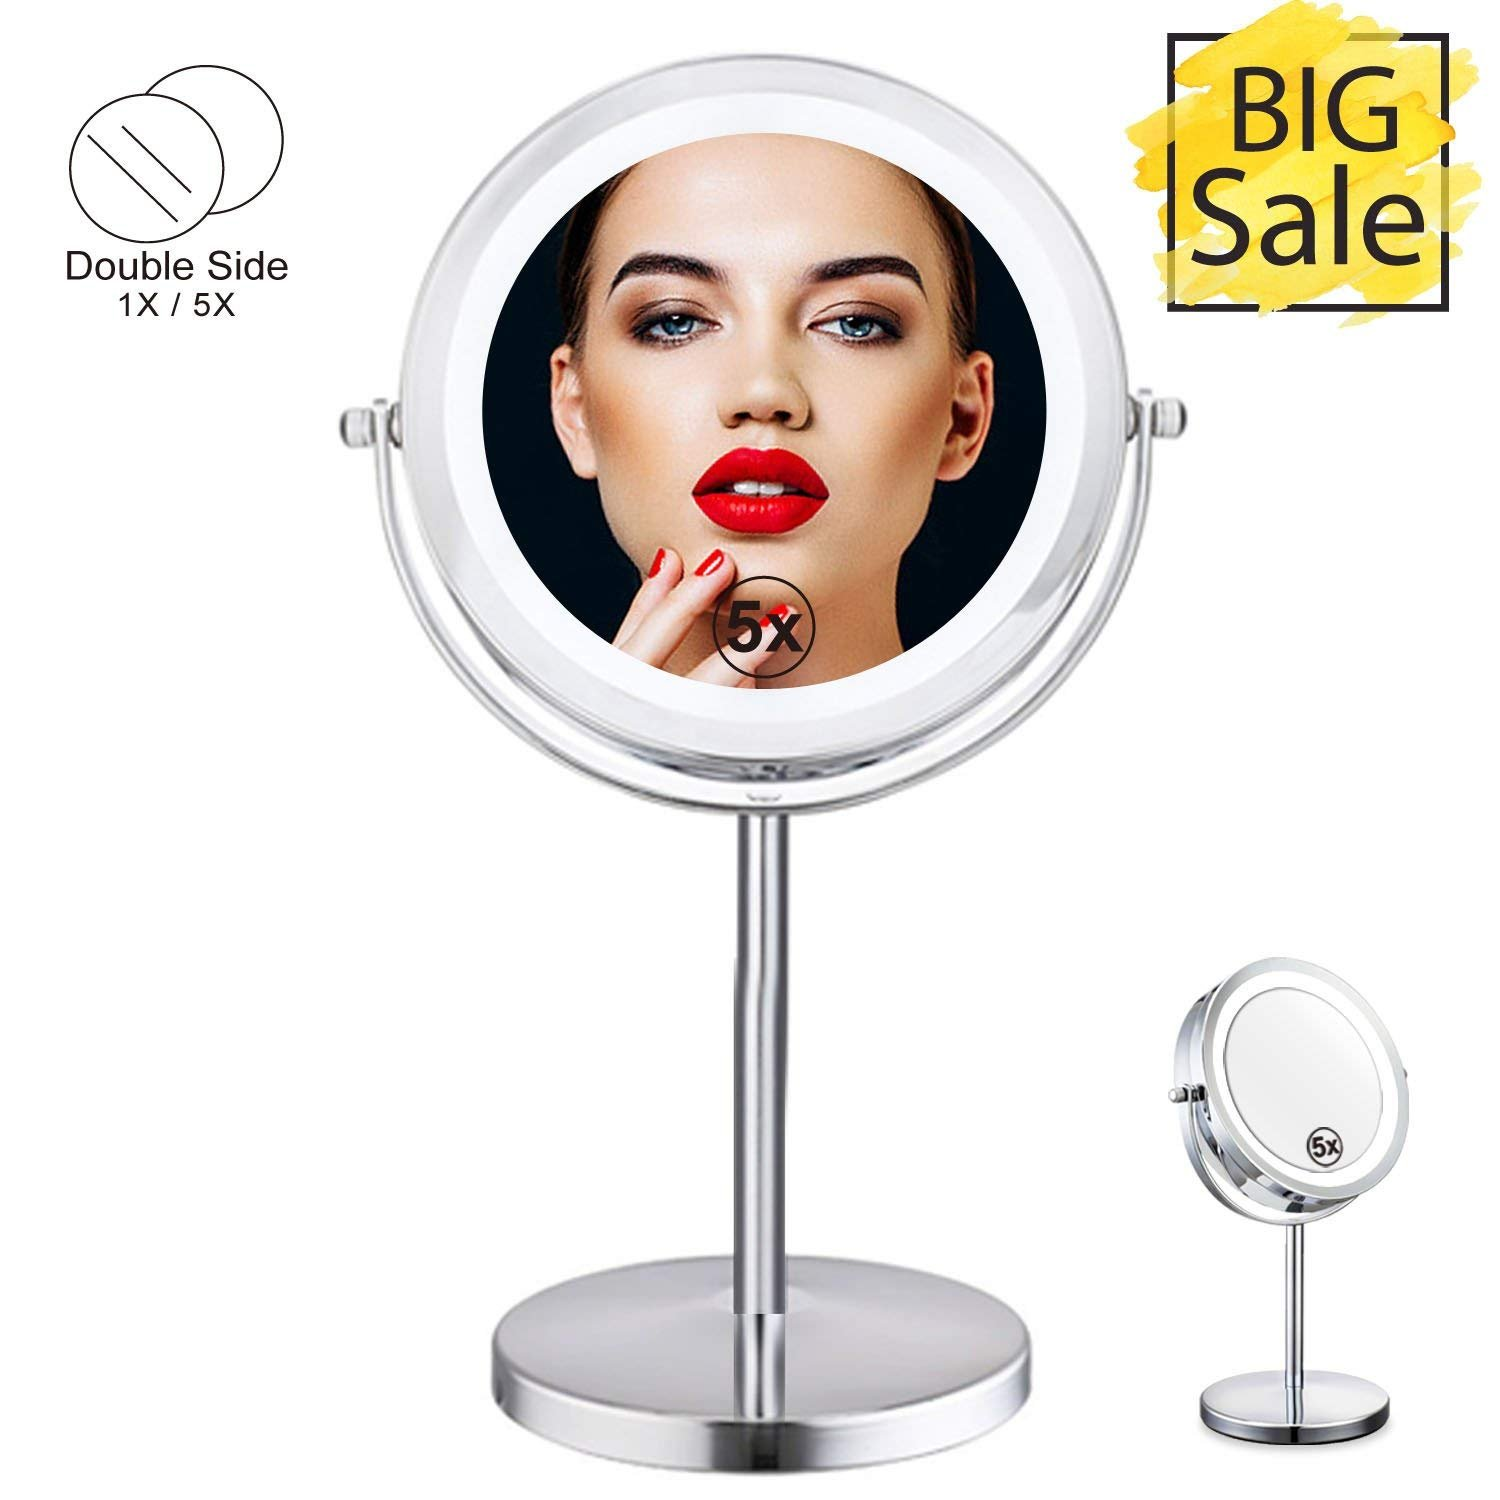 Double Sided Lighted Mirror - 7in LED Makeup Mirror With Lights,1x/5x Magnifying Vanity Mirror With Stand,Round Cosmetic Mirror for Bathroom or Bedroom Countertop,Desk Mirror With 360° Rotation (7in) CANARY